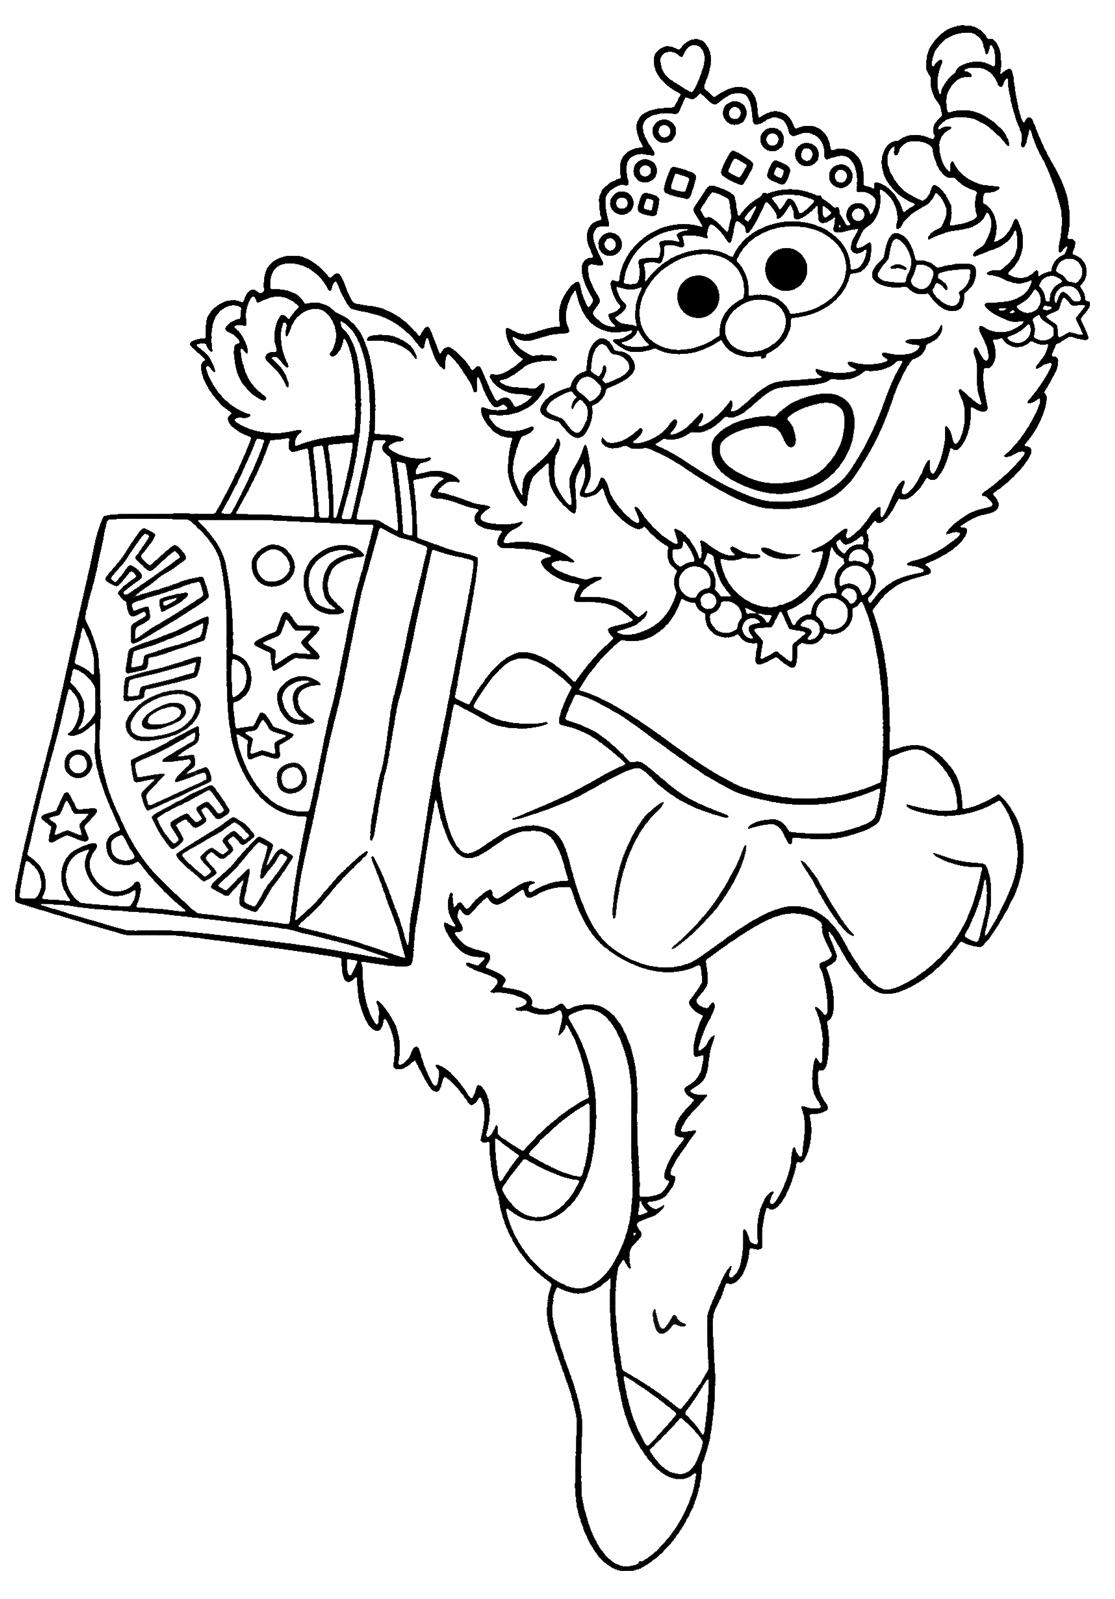 sesame street character coloring pages - photo#27